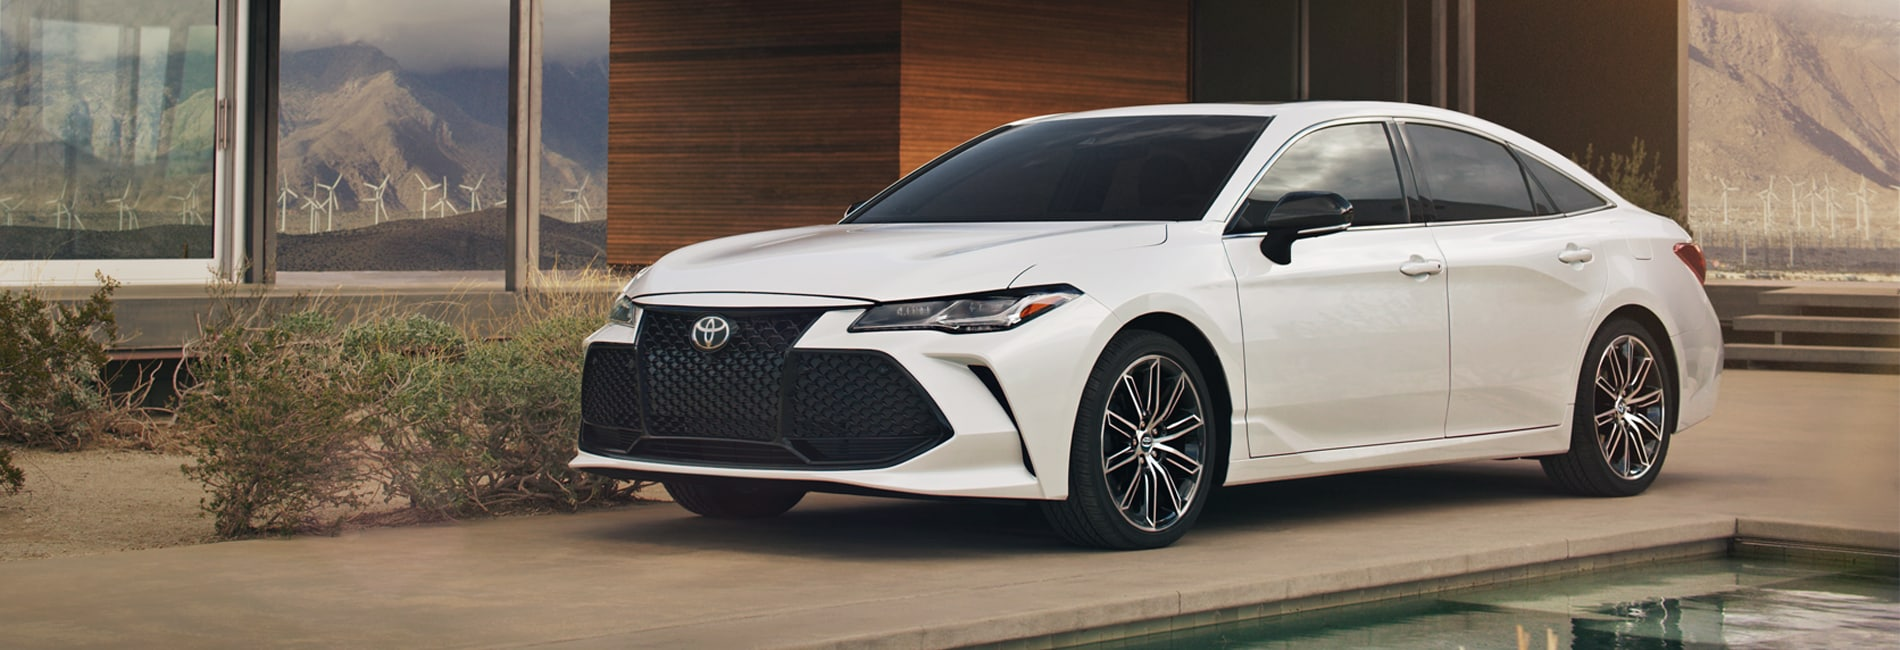 Toyota Avalon Exterior Vehicle Features